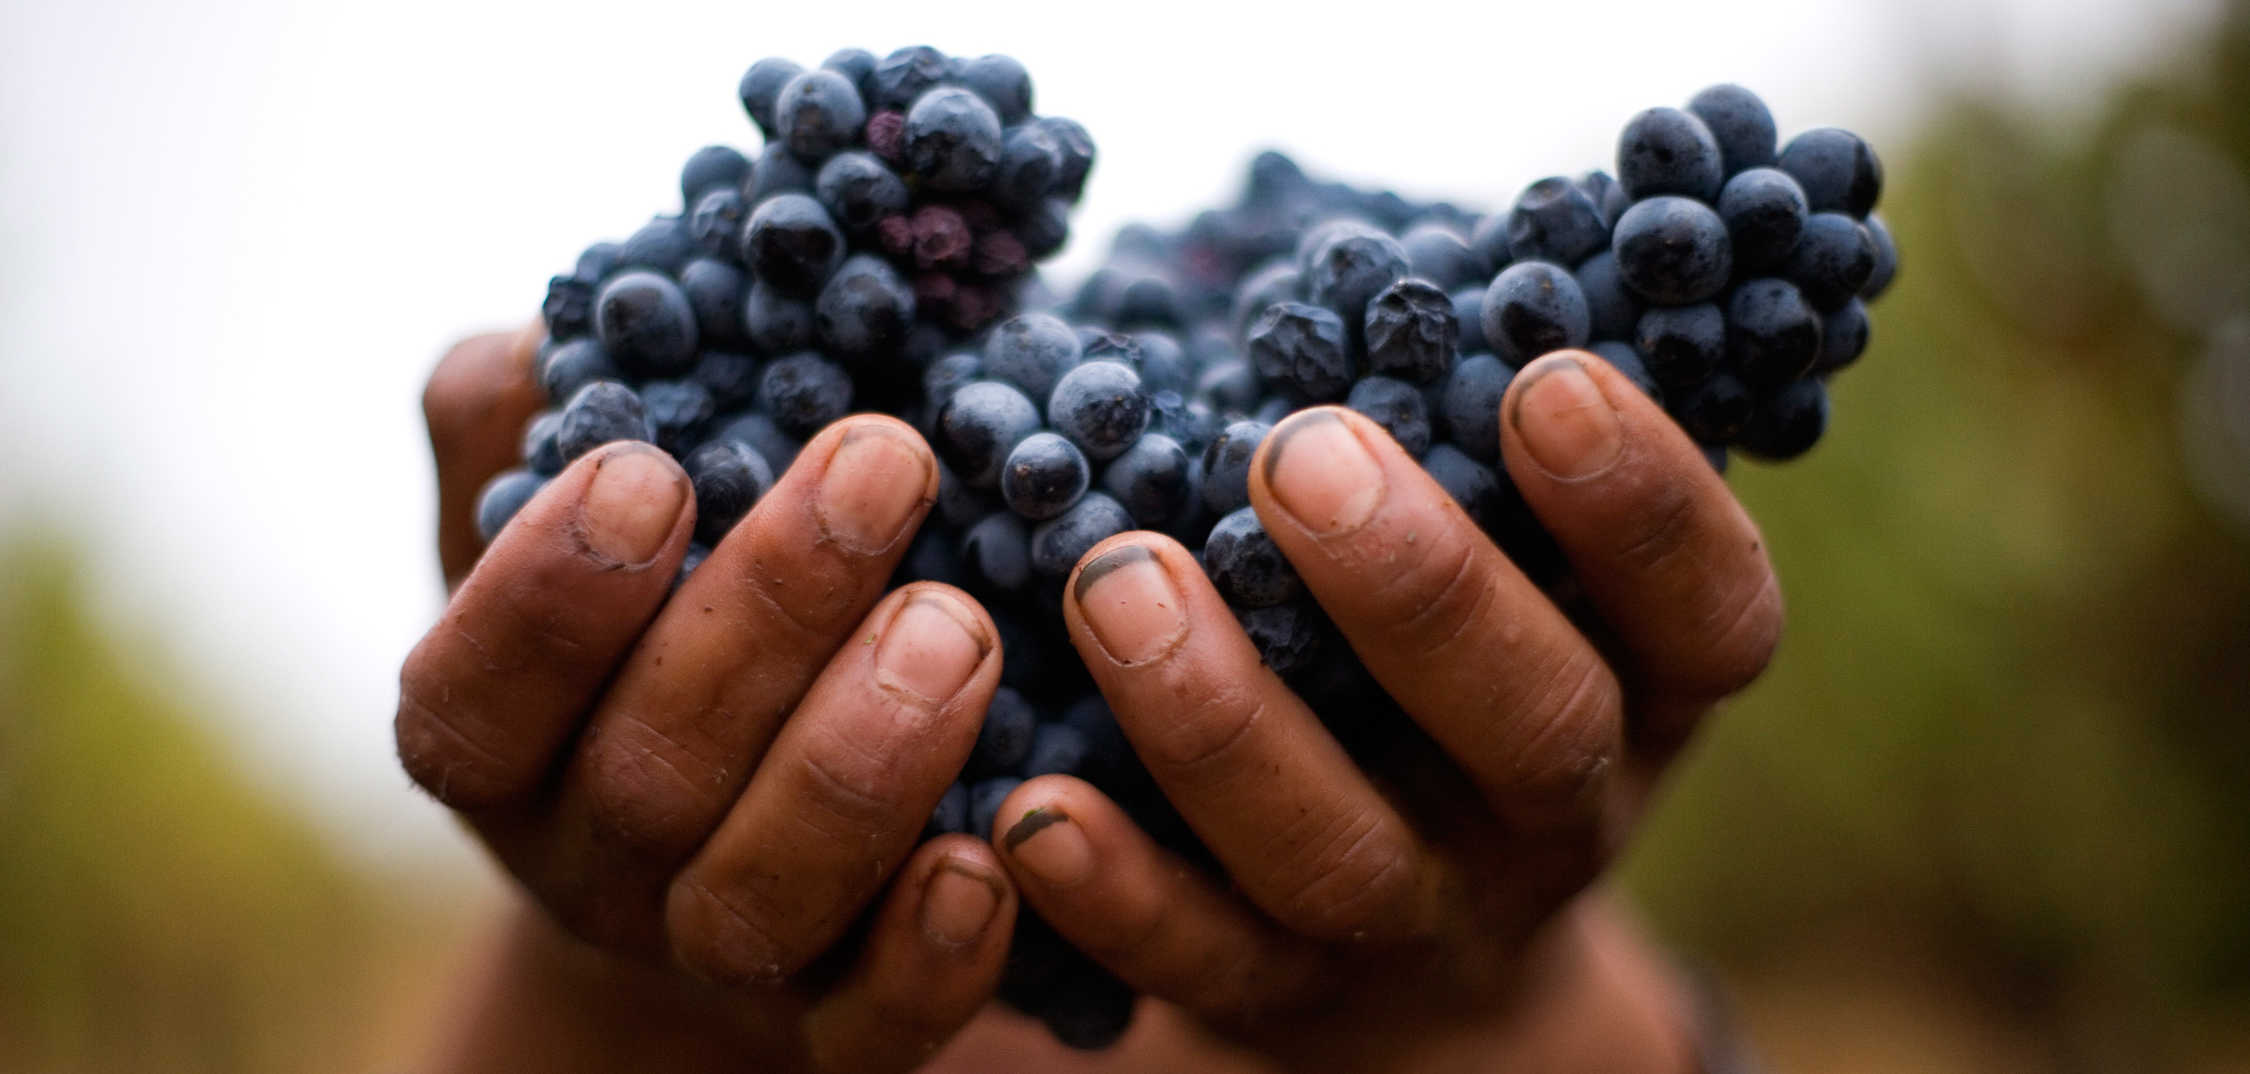 17-Hands-and-grapes-e1617752377883